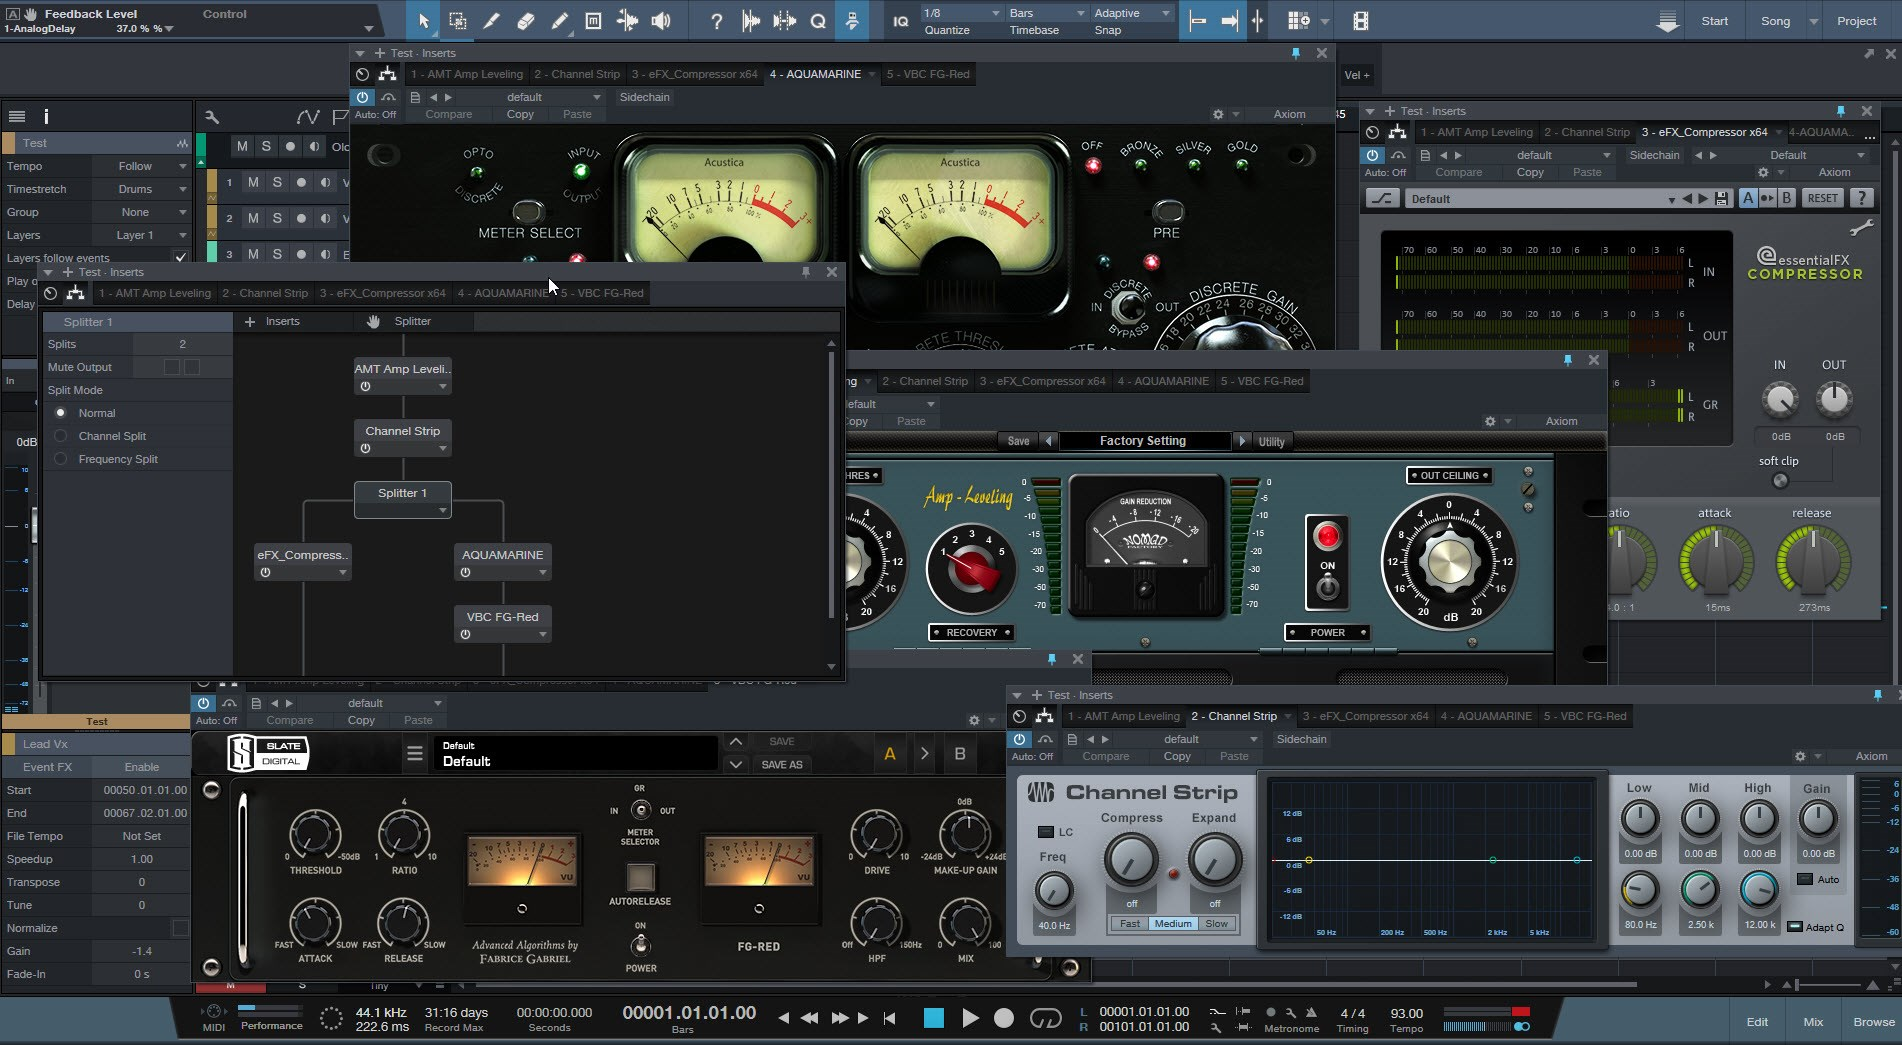 Studio One screenshot 2